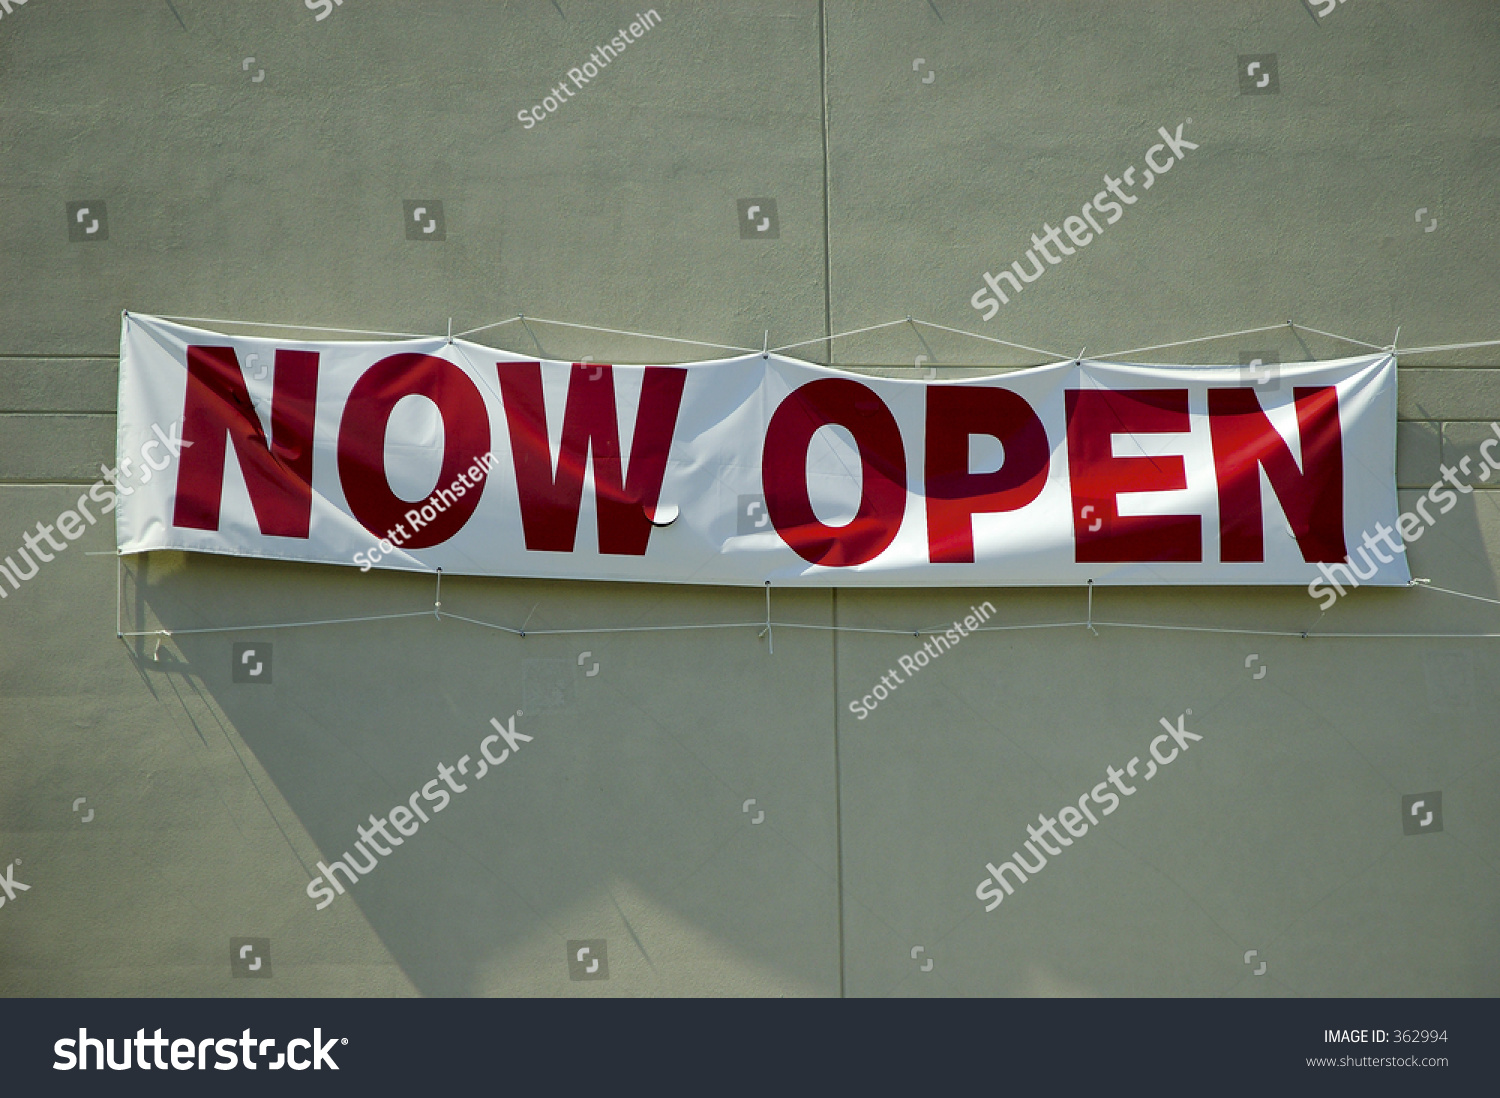 now open banner hanging on wall stock photo 362994  shutterstock